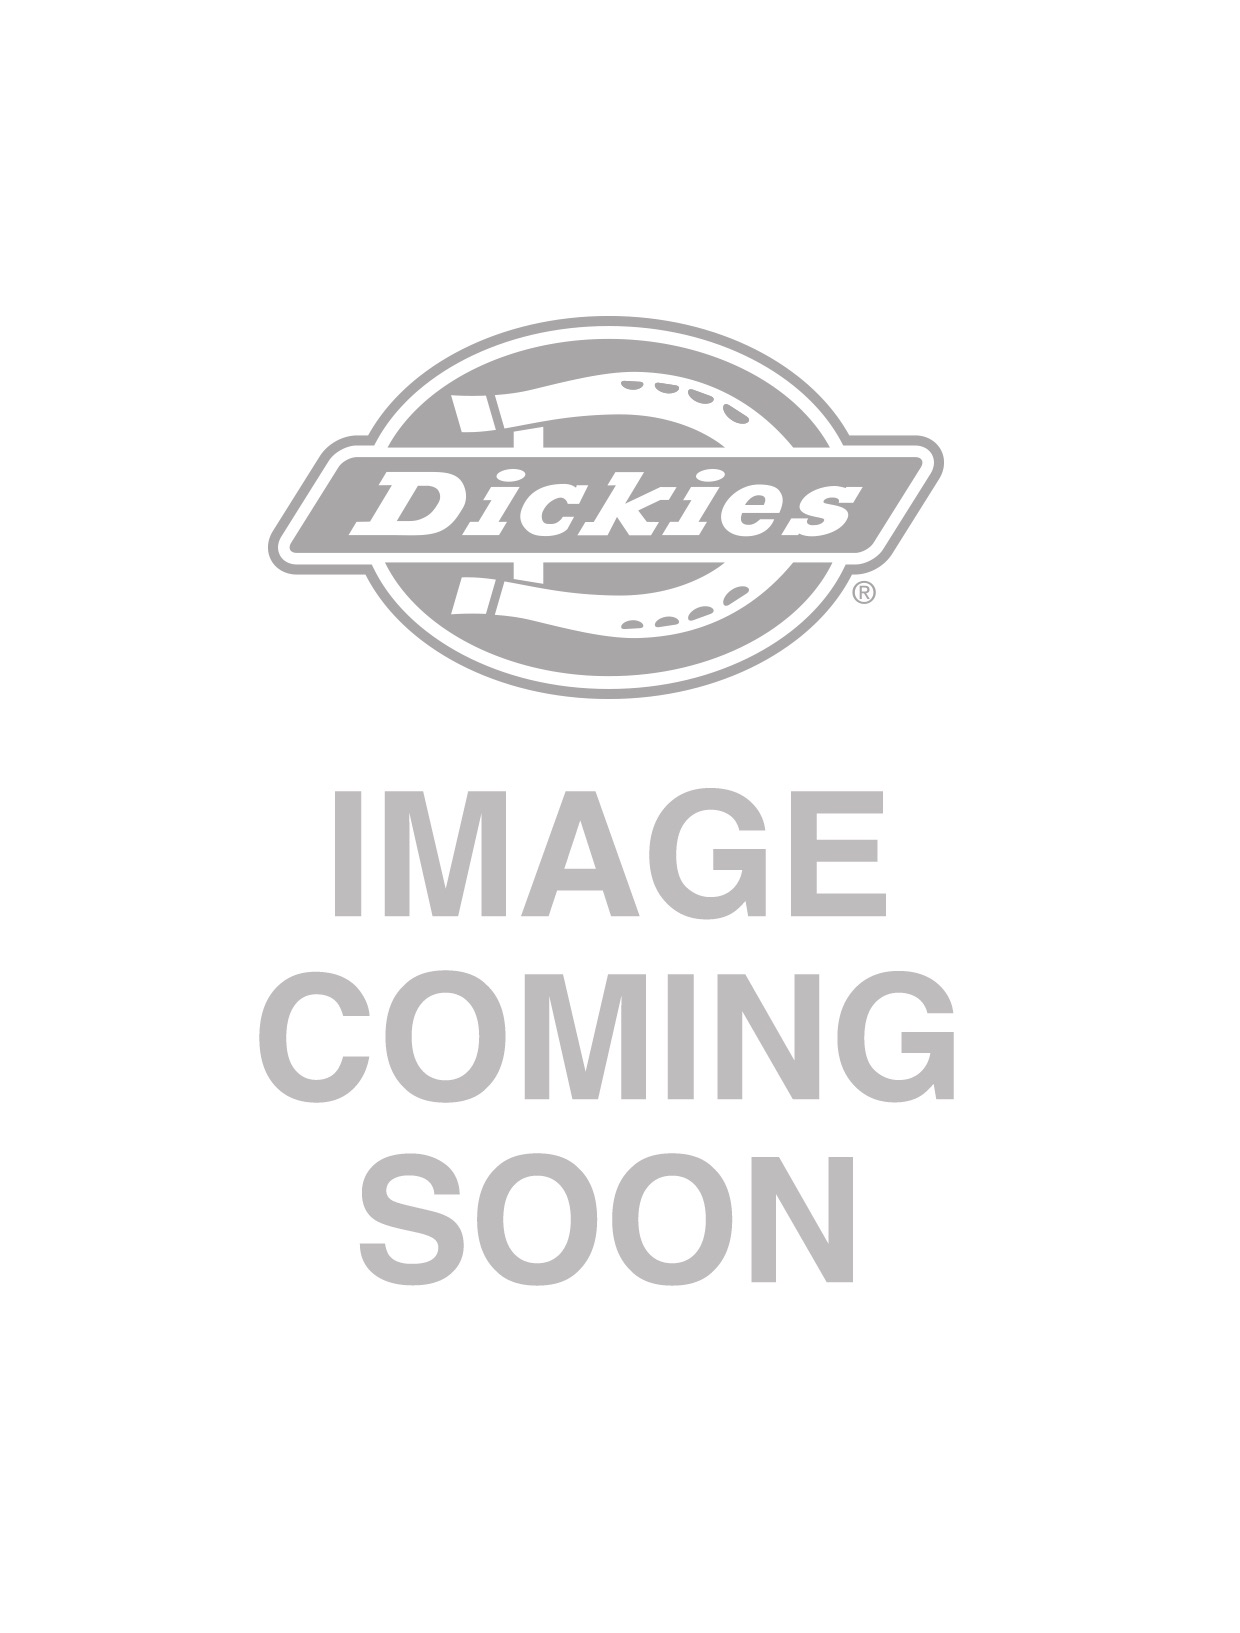 Dickies Womens Faber Sweatshirt